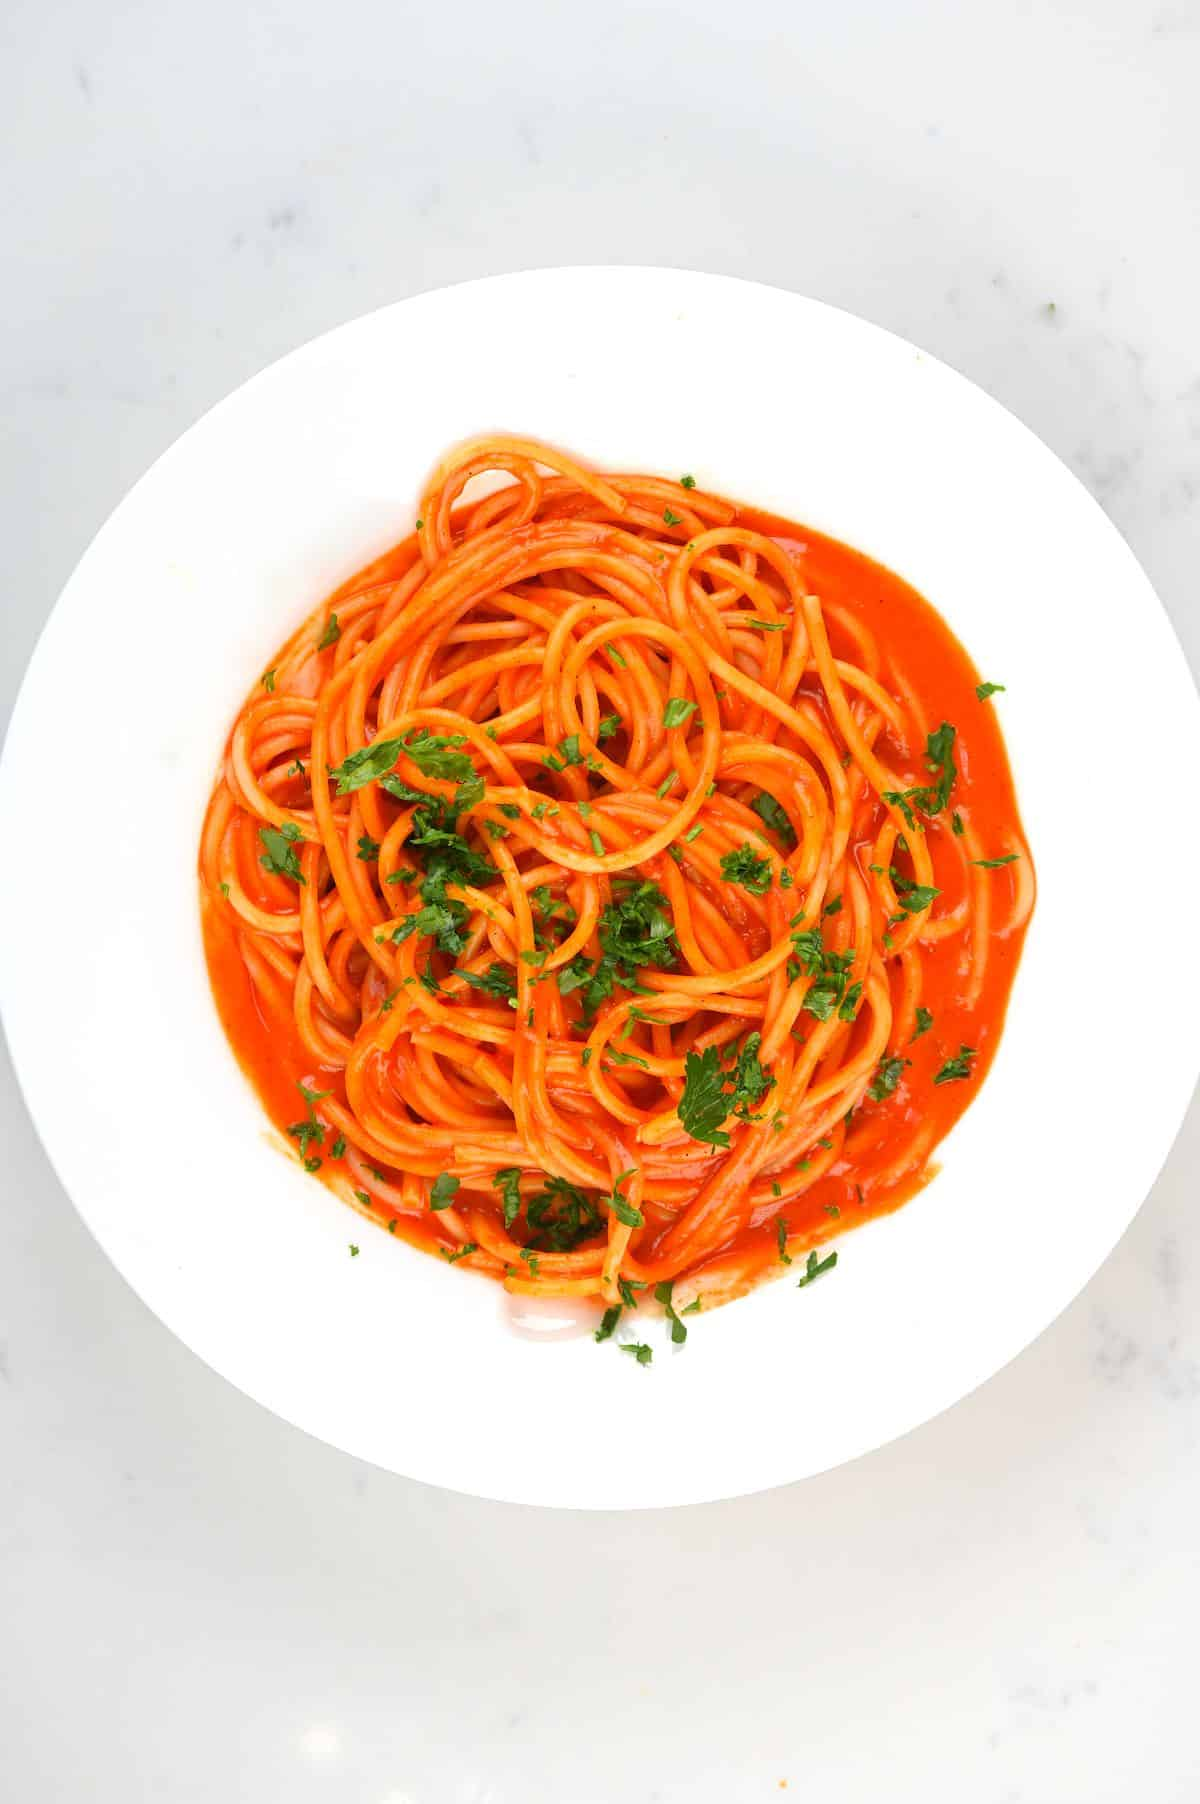 Roasted Red Pepper Pasta in a plate